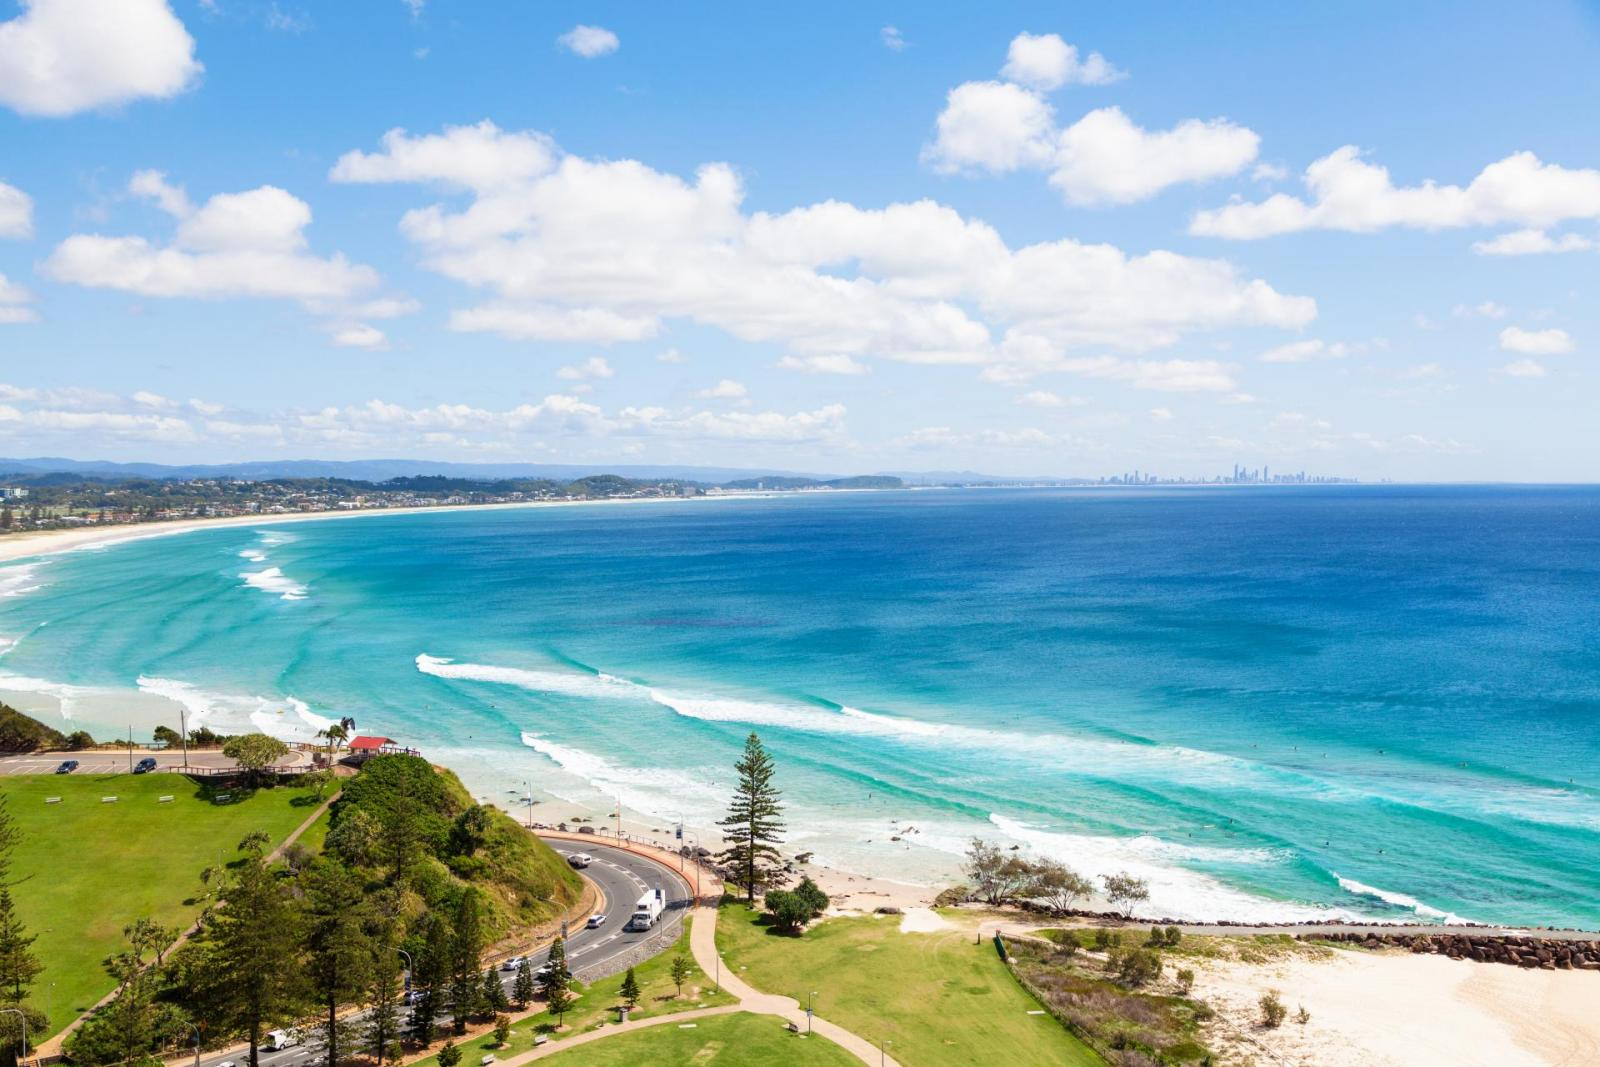 Gold-Coast-kirra-beach-coolangatta-queensland-qld-surfer-161004204733114